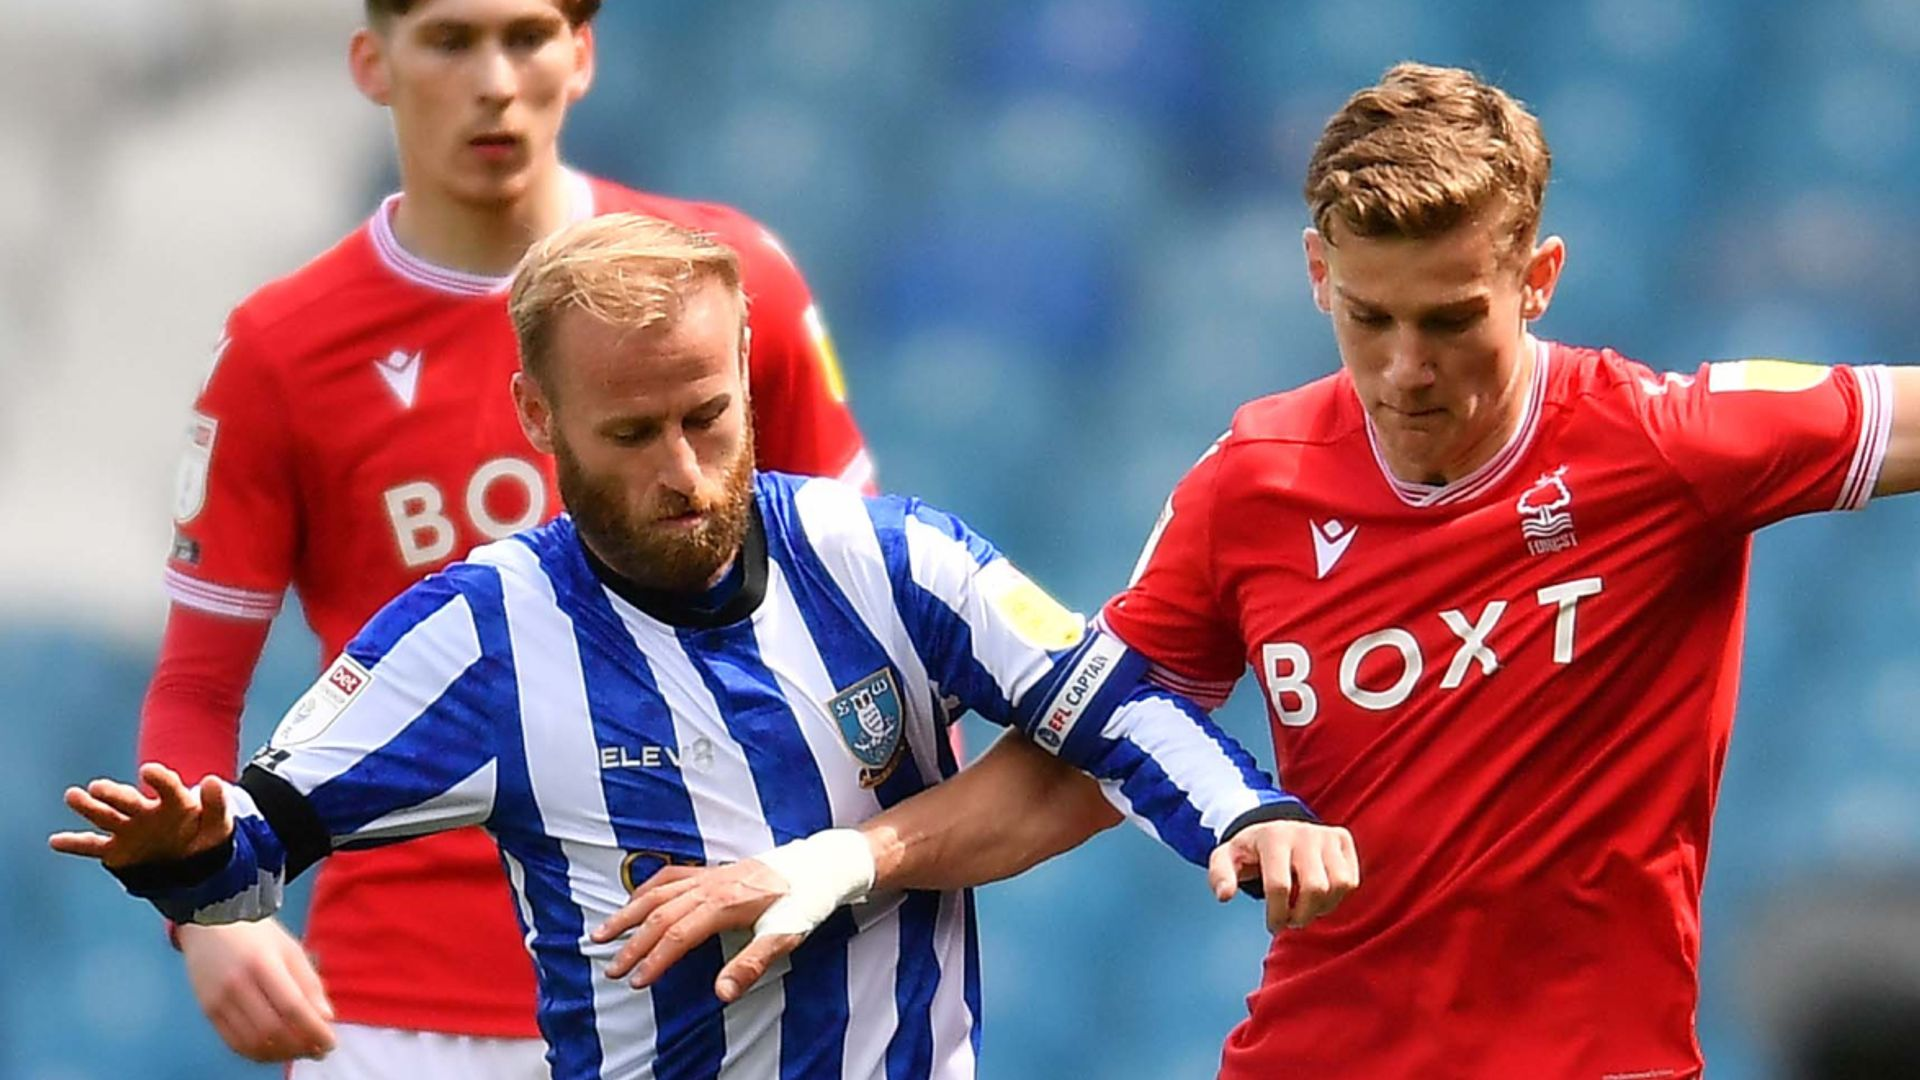 Sheff Wed survival hopes hang in balance after Forest draw